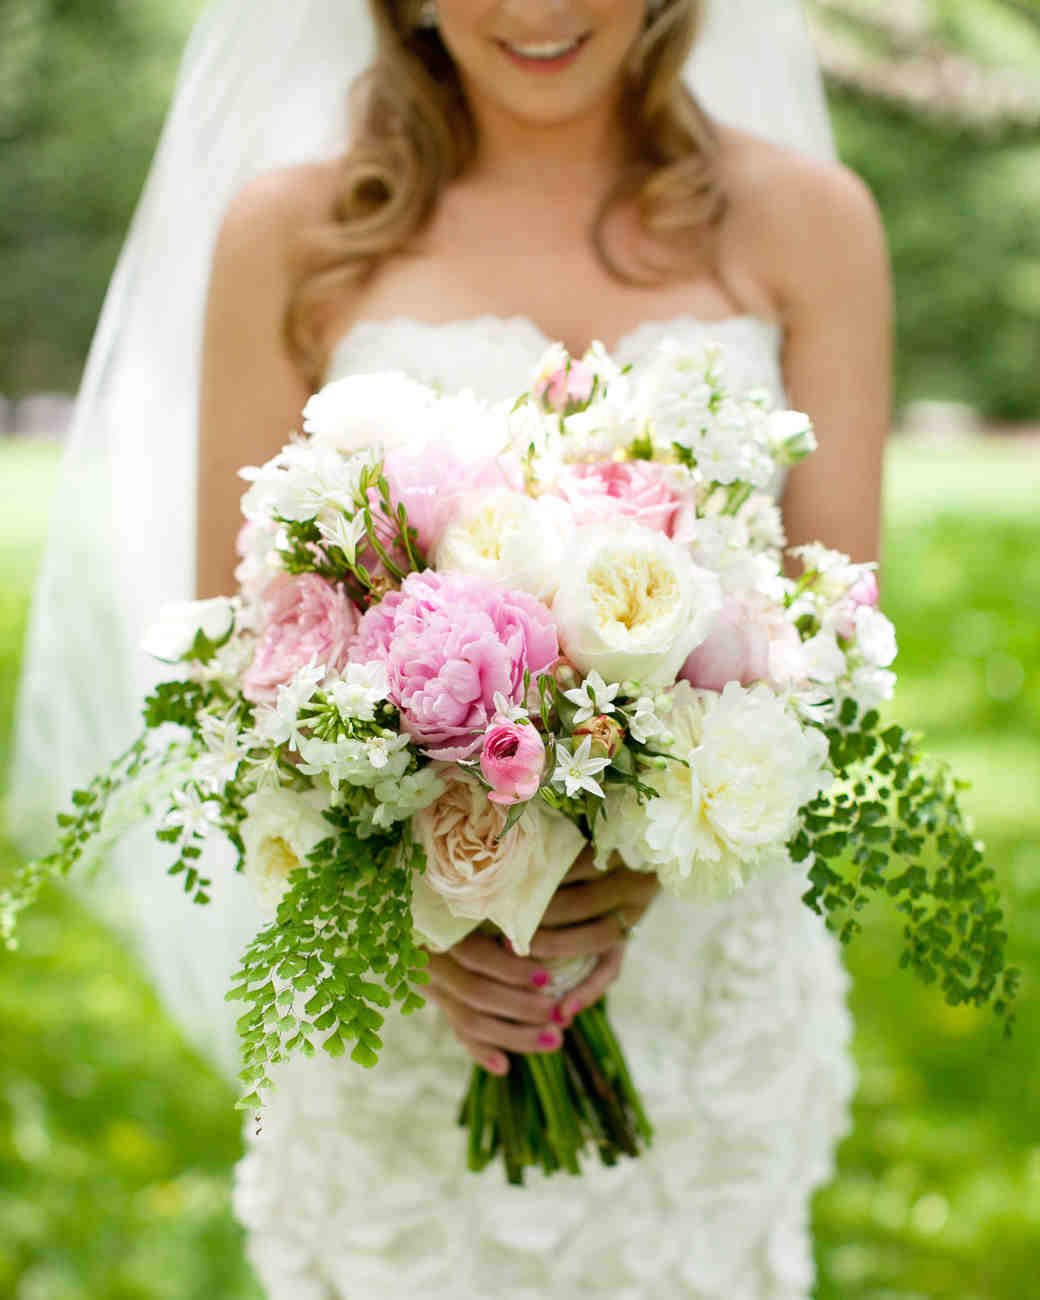 Spring Wedding Flowers Pictures: A Pink-and-White Outdoor Destination Wedding In North